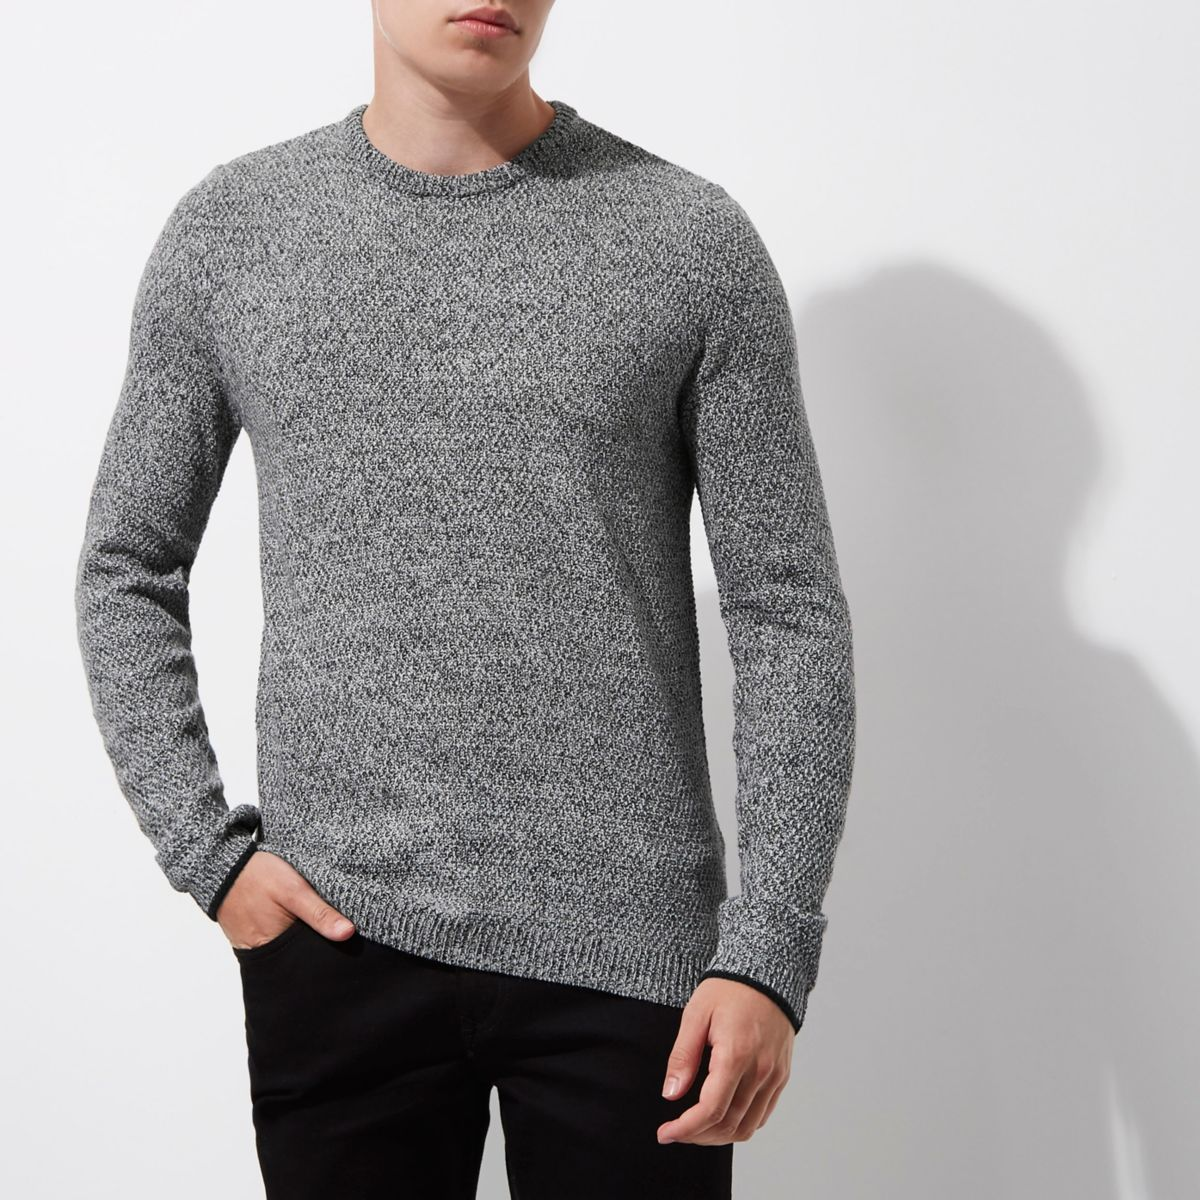 Renew your wardrobe basics or try on new styles with our selection of men's jumpers and cardigans. Modern classics for smart dressing, every day.